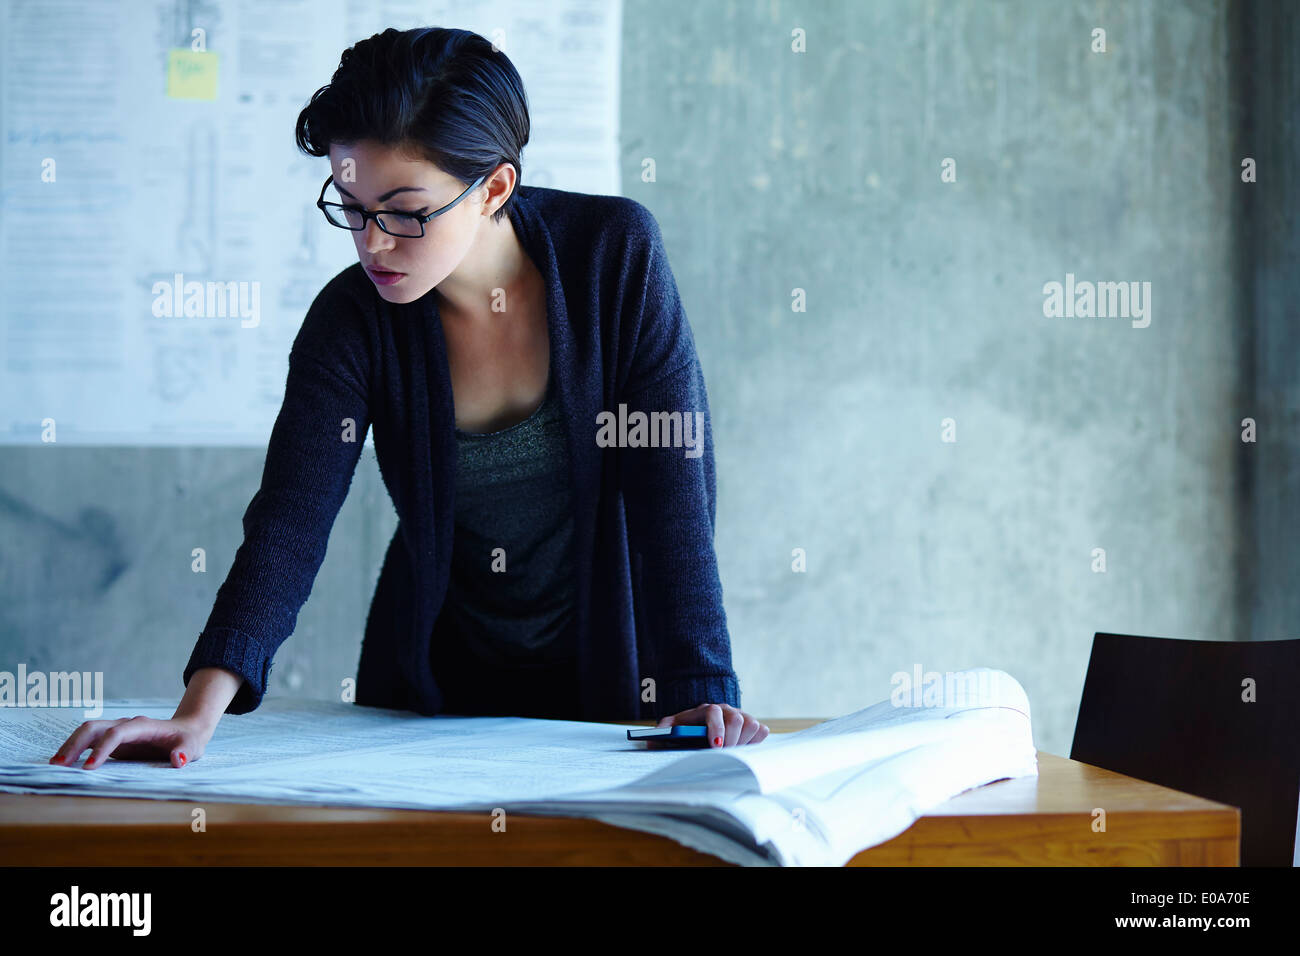 Businesswoman studying blueprints in office - Stock Image